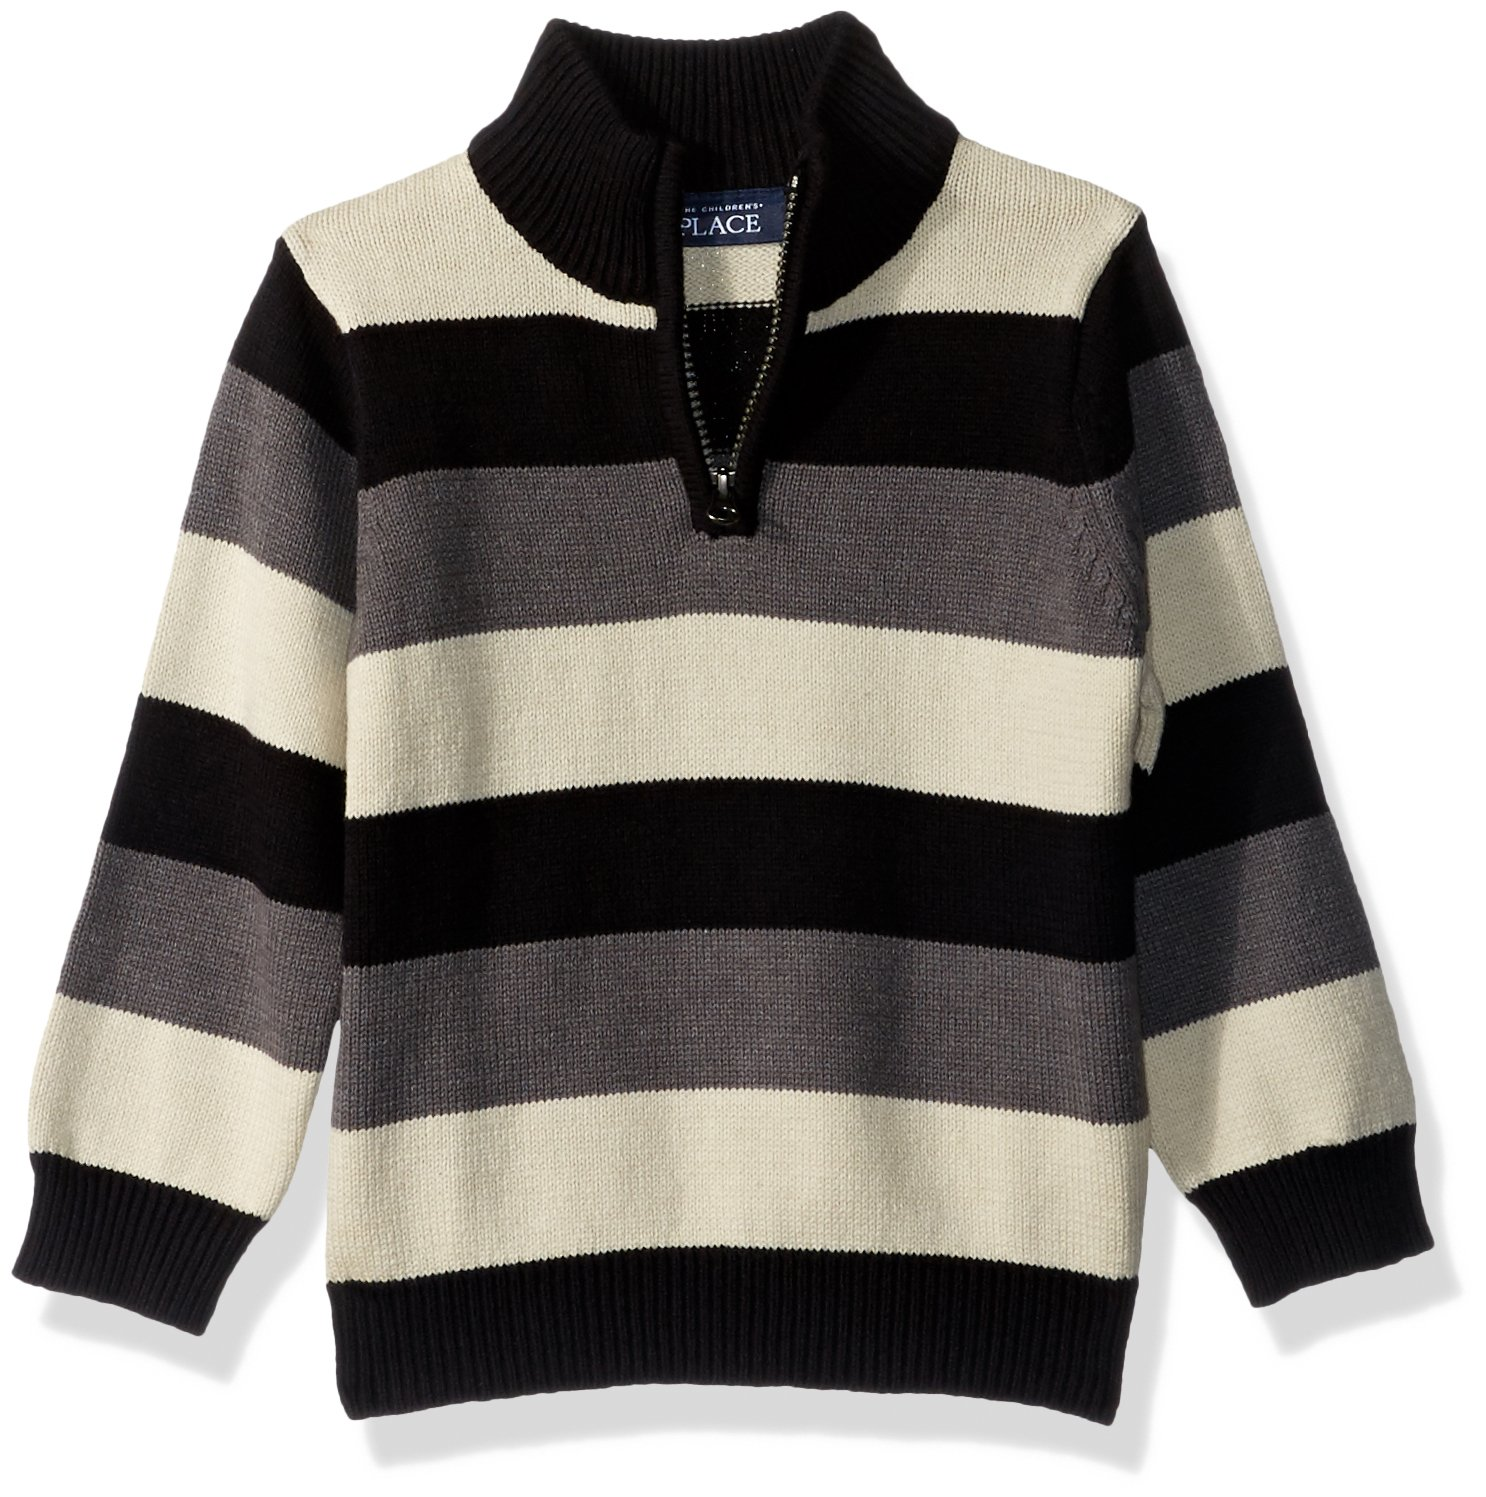 The Children's Place Baby Boys' Sweater